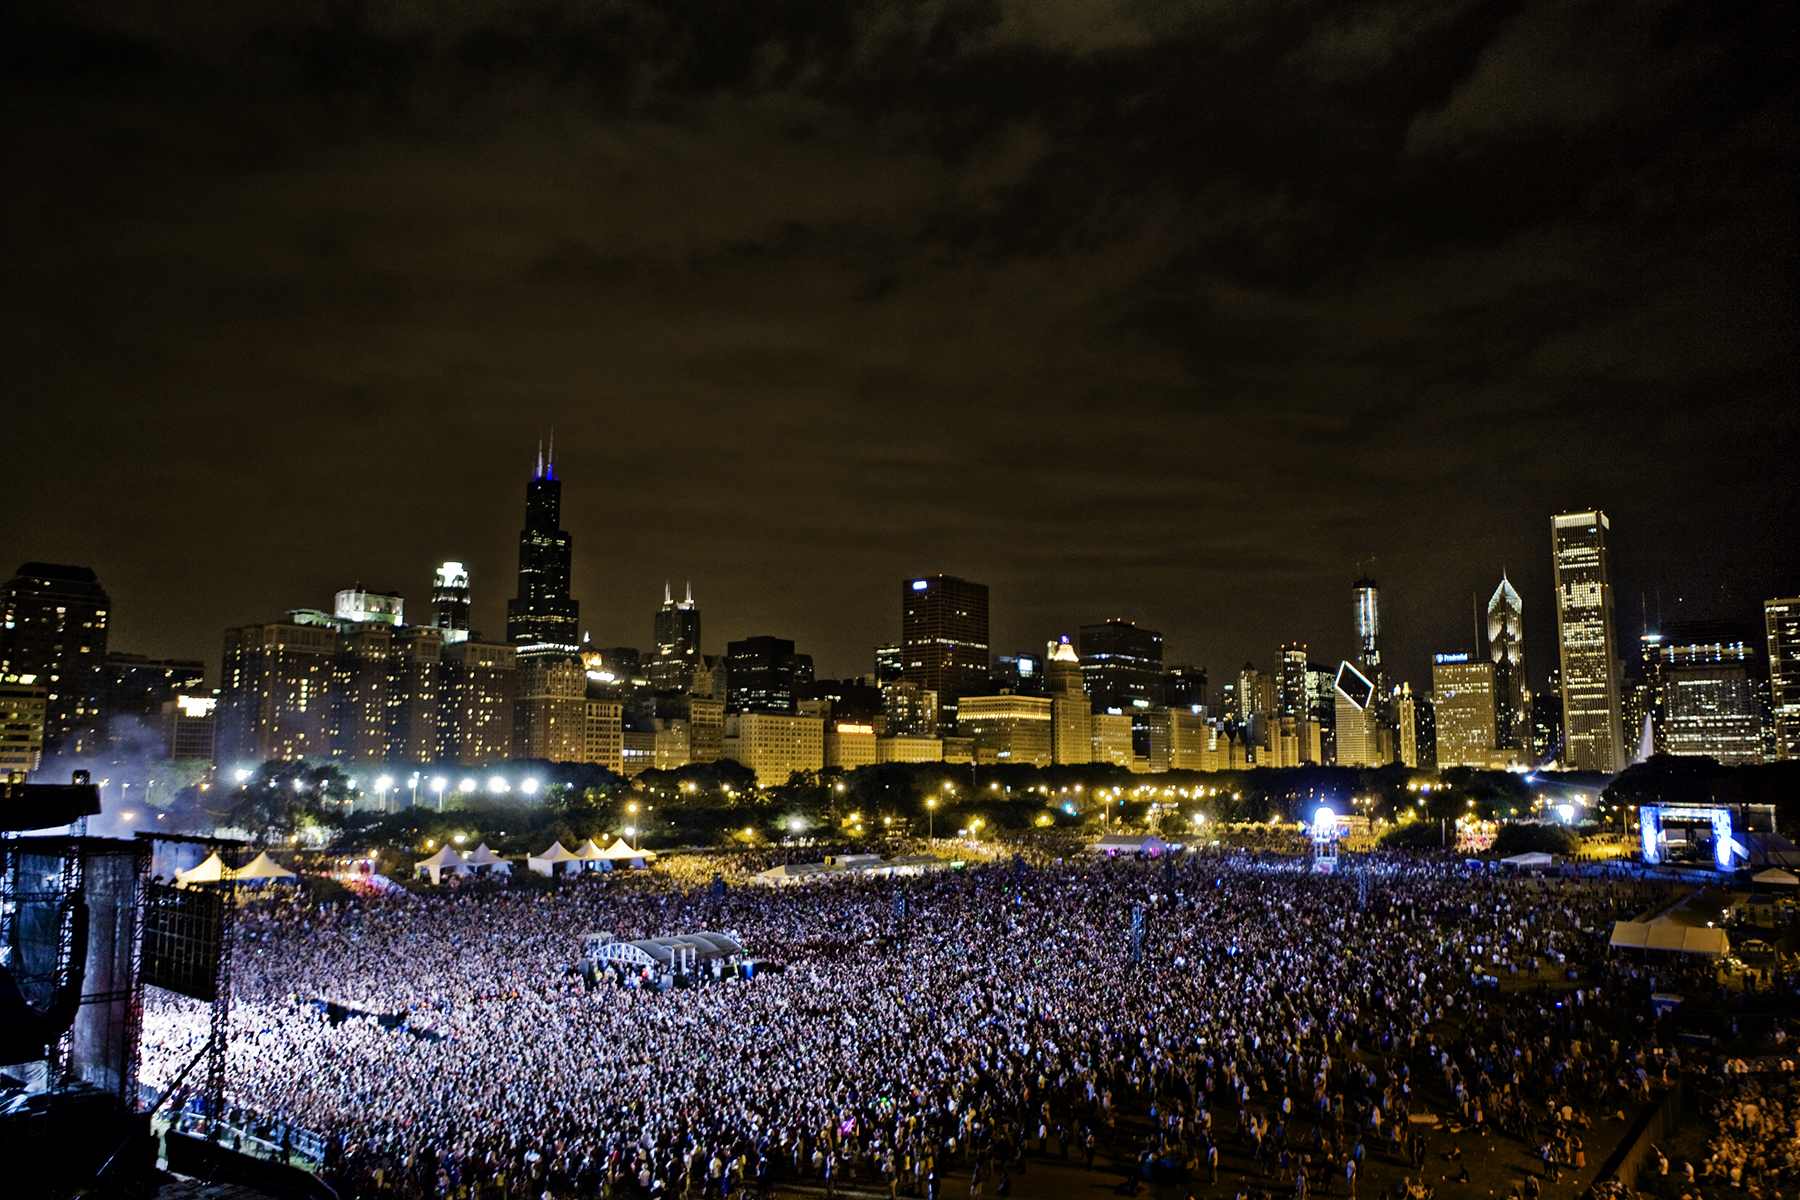 [FESTIVAL NEWS] Lollapalooza Celebrates 25-Year Anniversary With 4 Days & Colorful Lineup